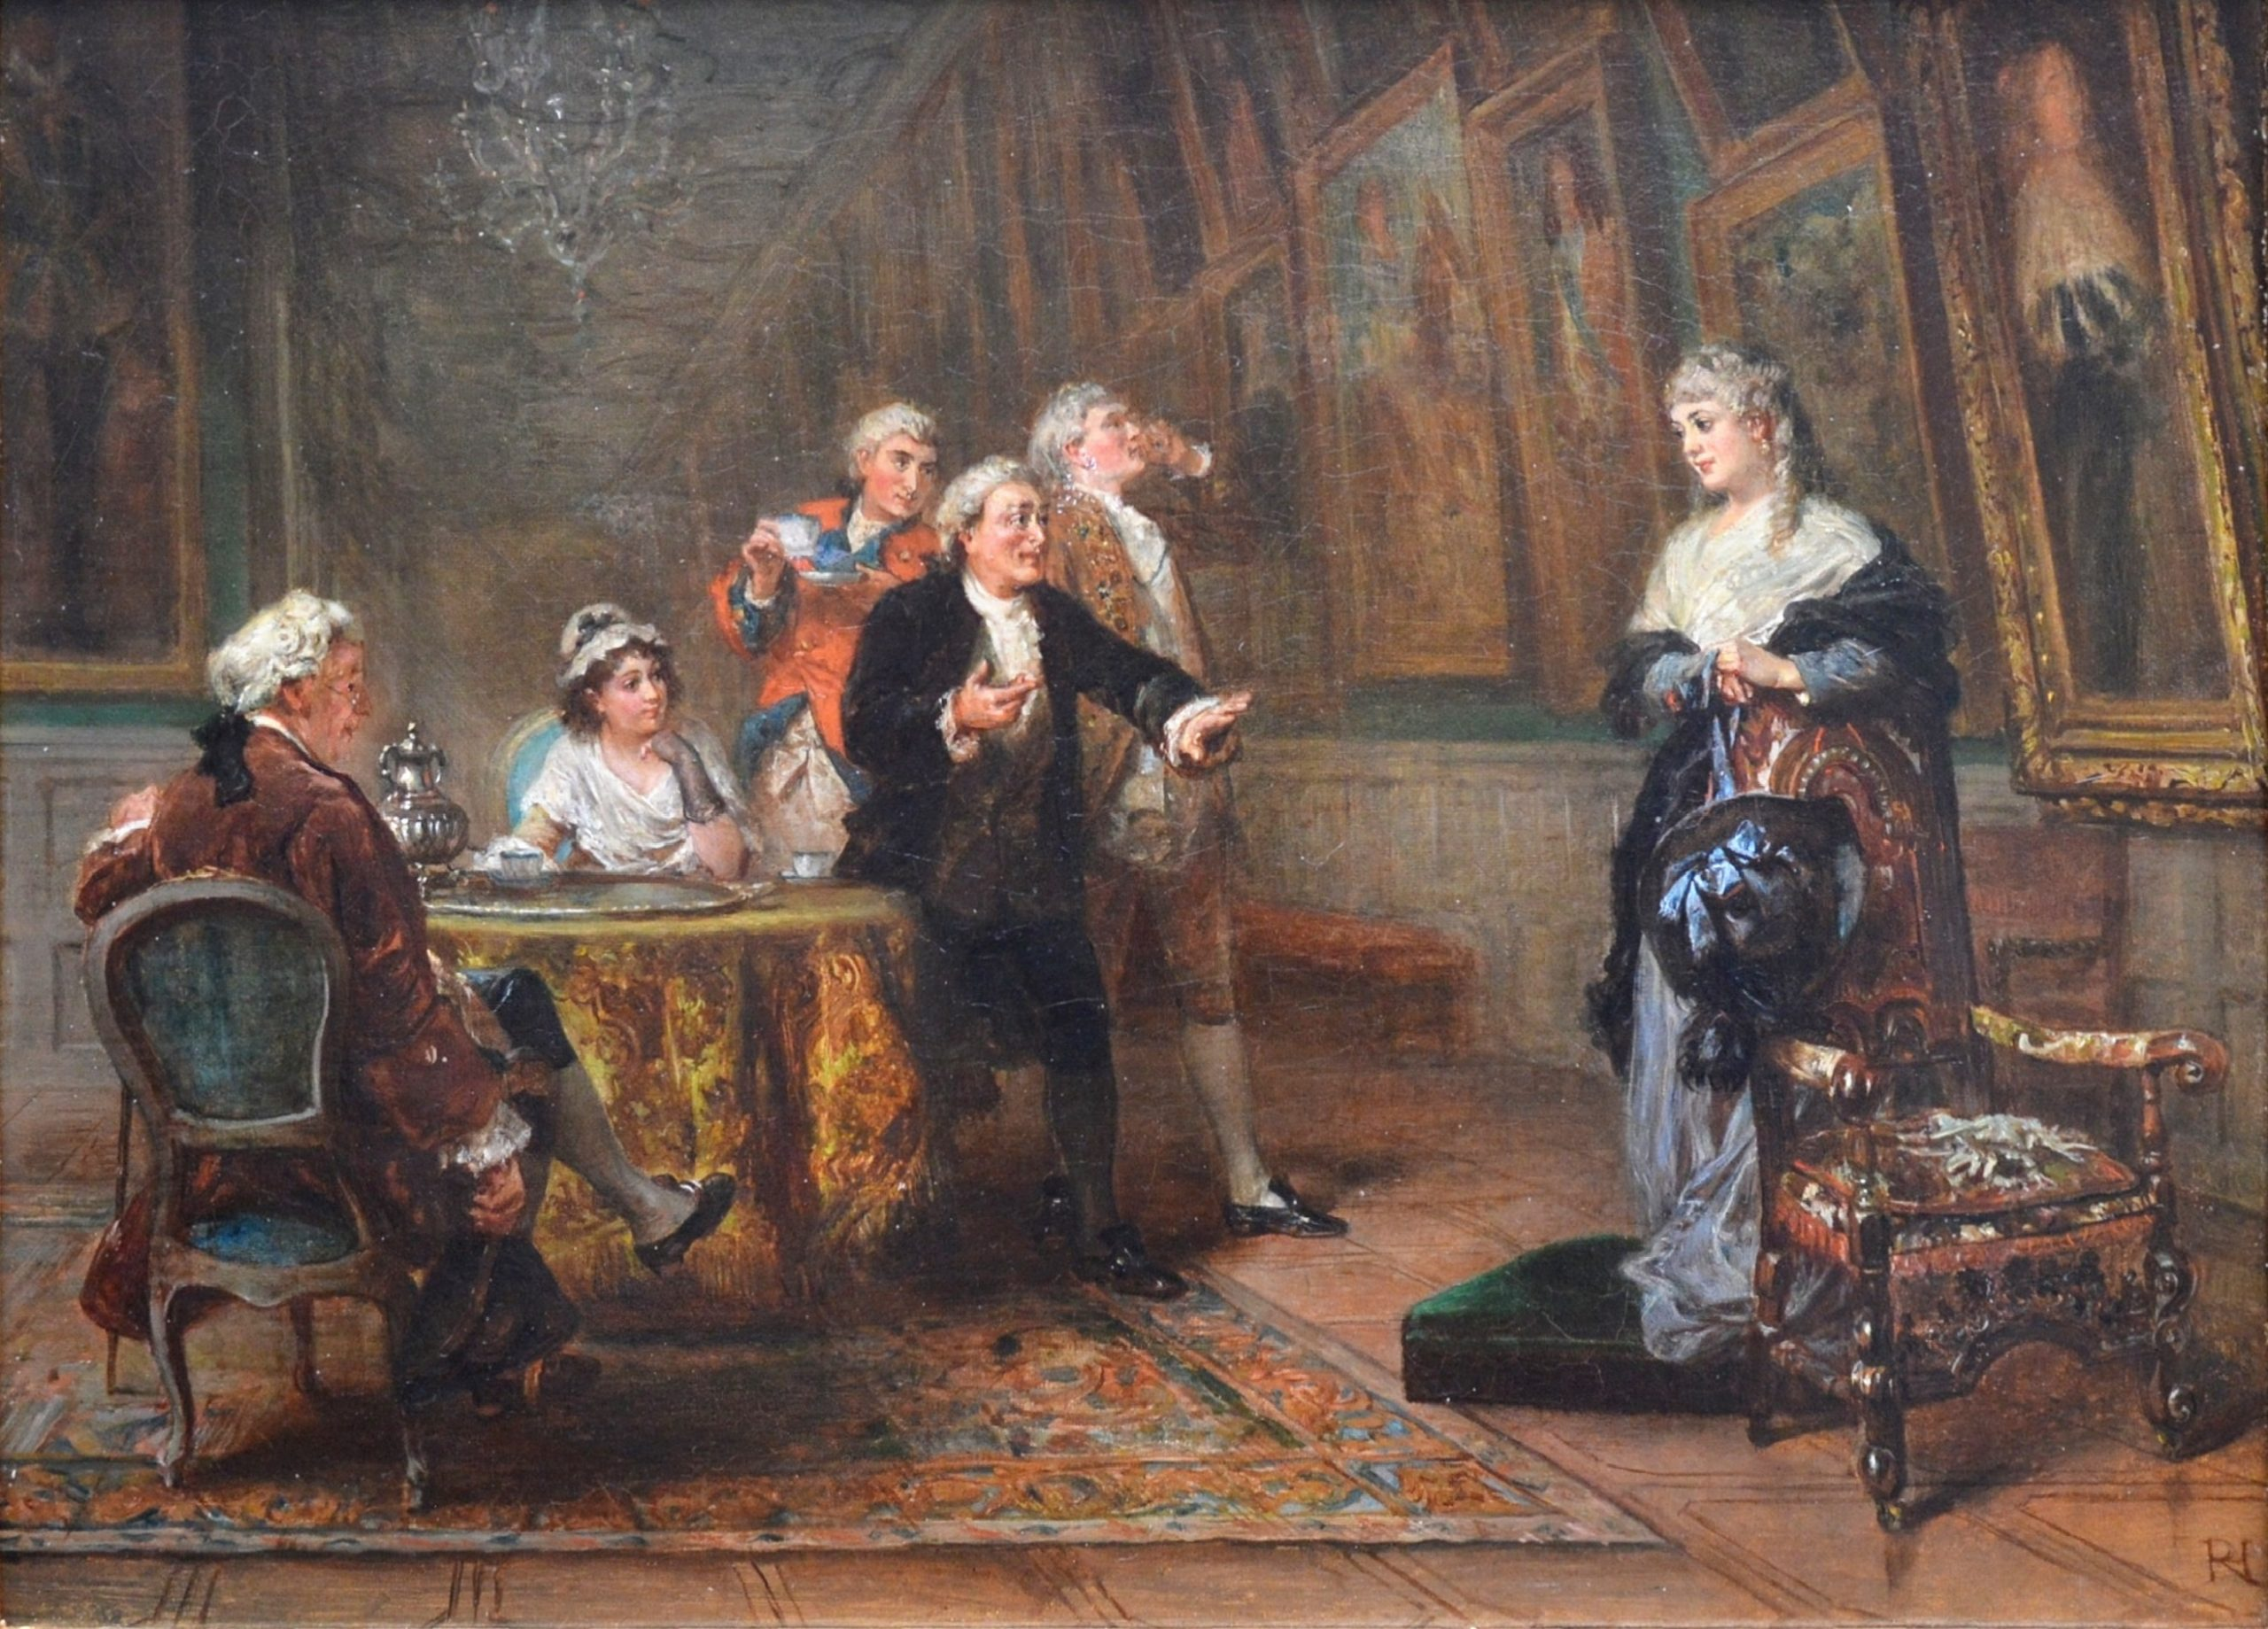 The Long Gallery, Hardwick Hall - 19th Century Oil Painting of English Stately Home Image